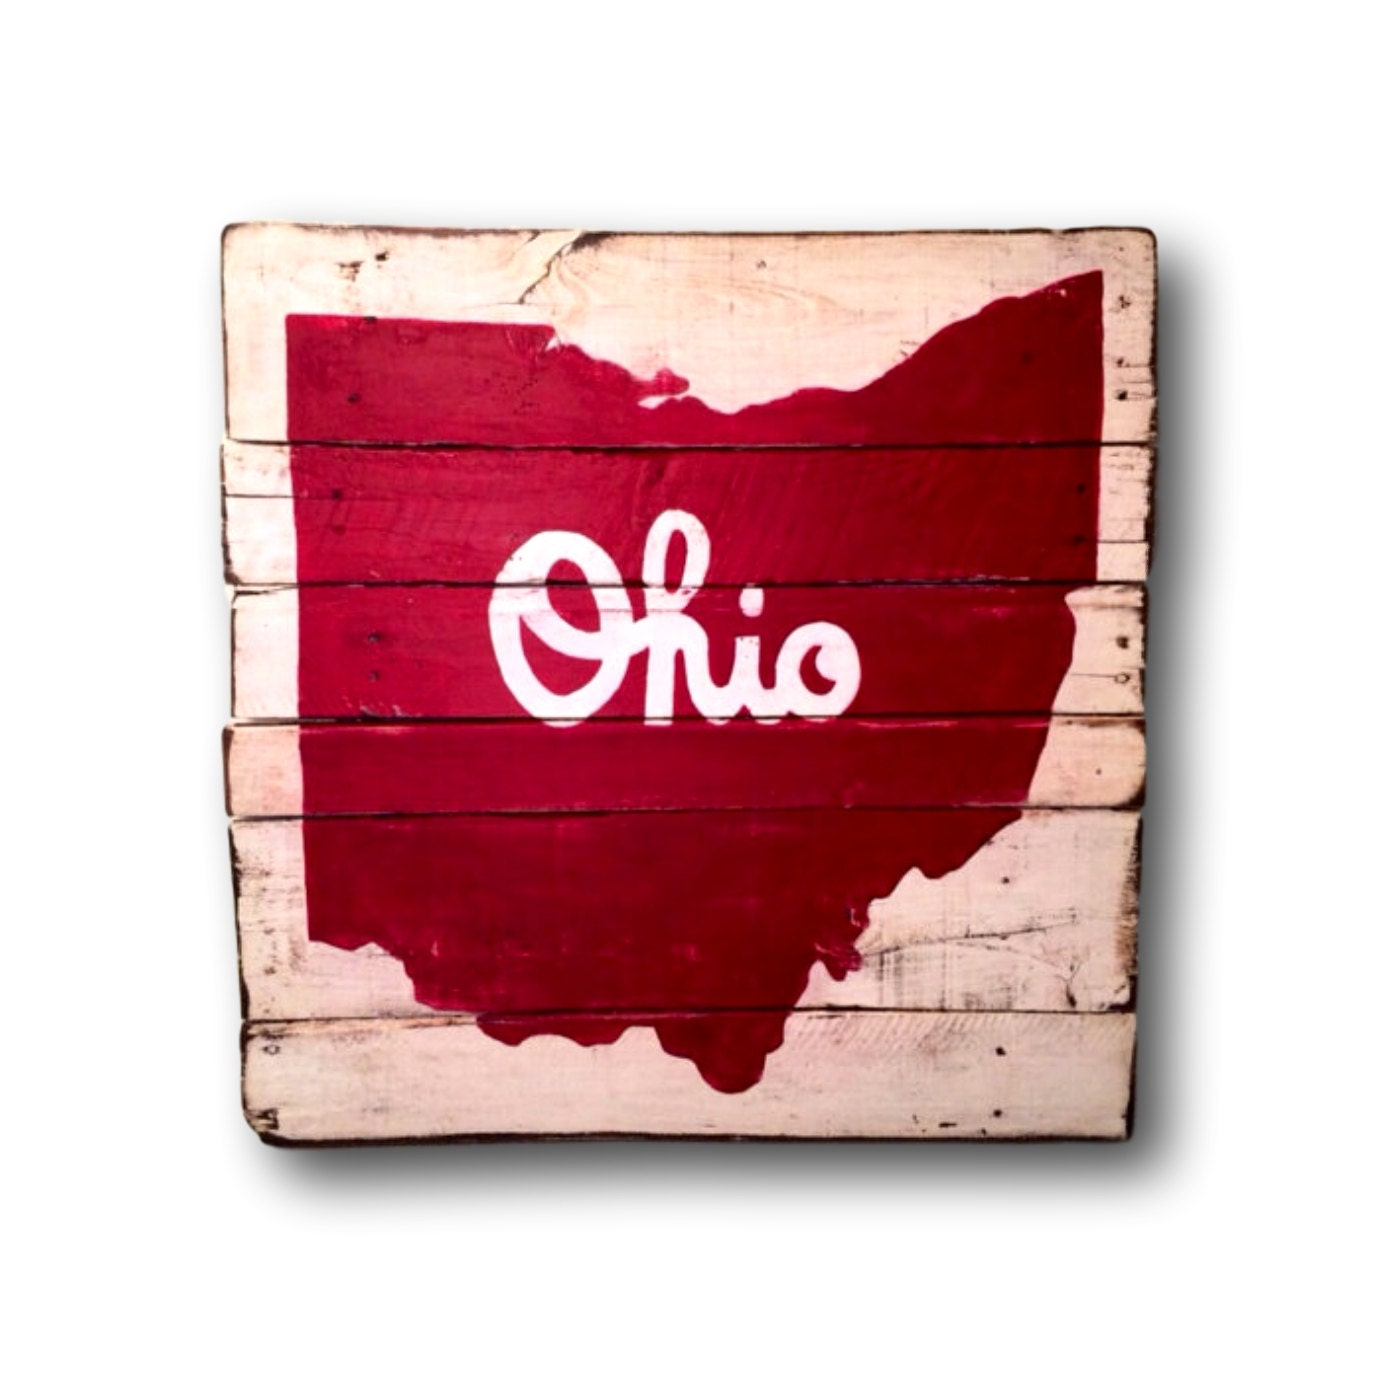 Ohio state sign block o sign graduation gift dorm decor script ohio sign state of ohio pallet sign ohio art state sign amipublicfo Image collections